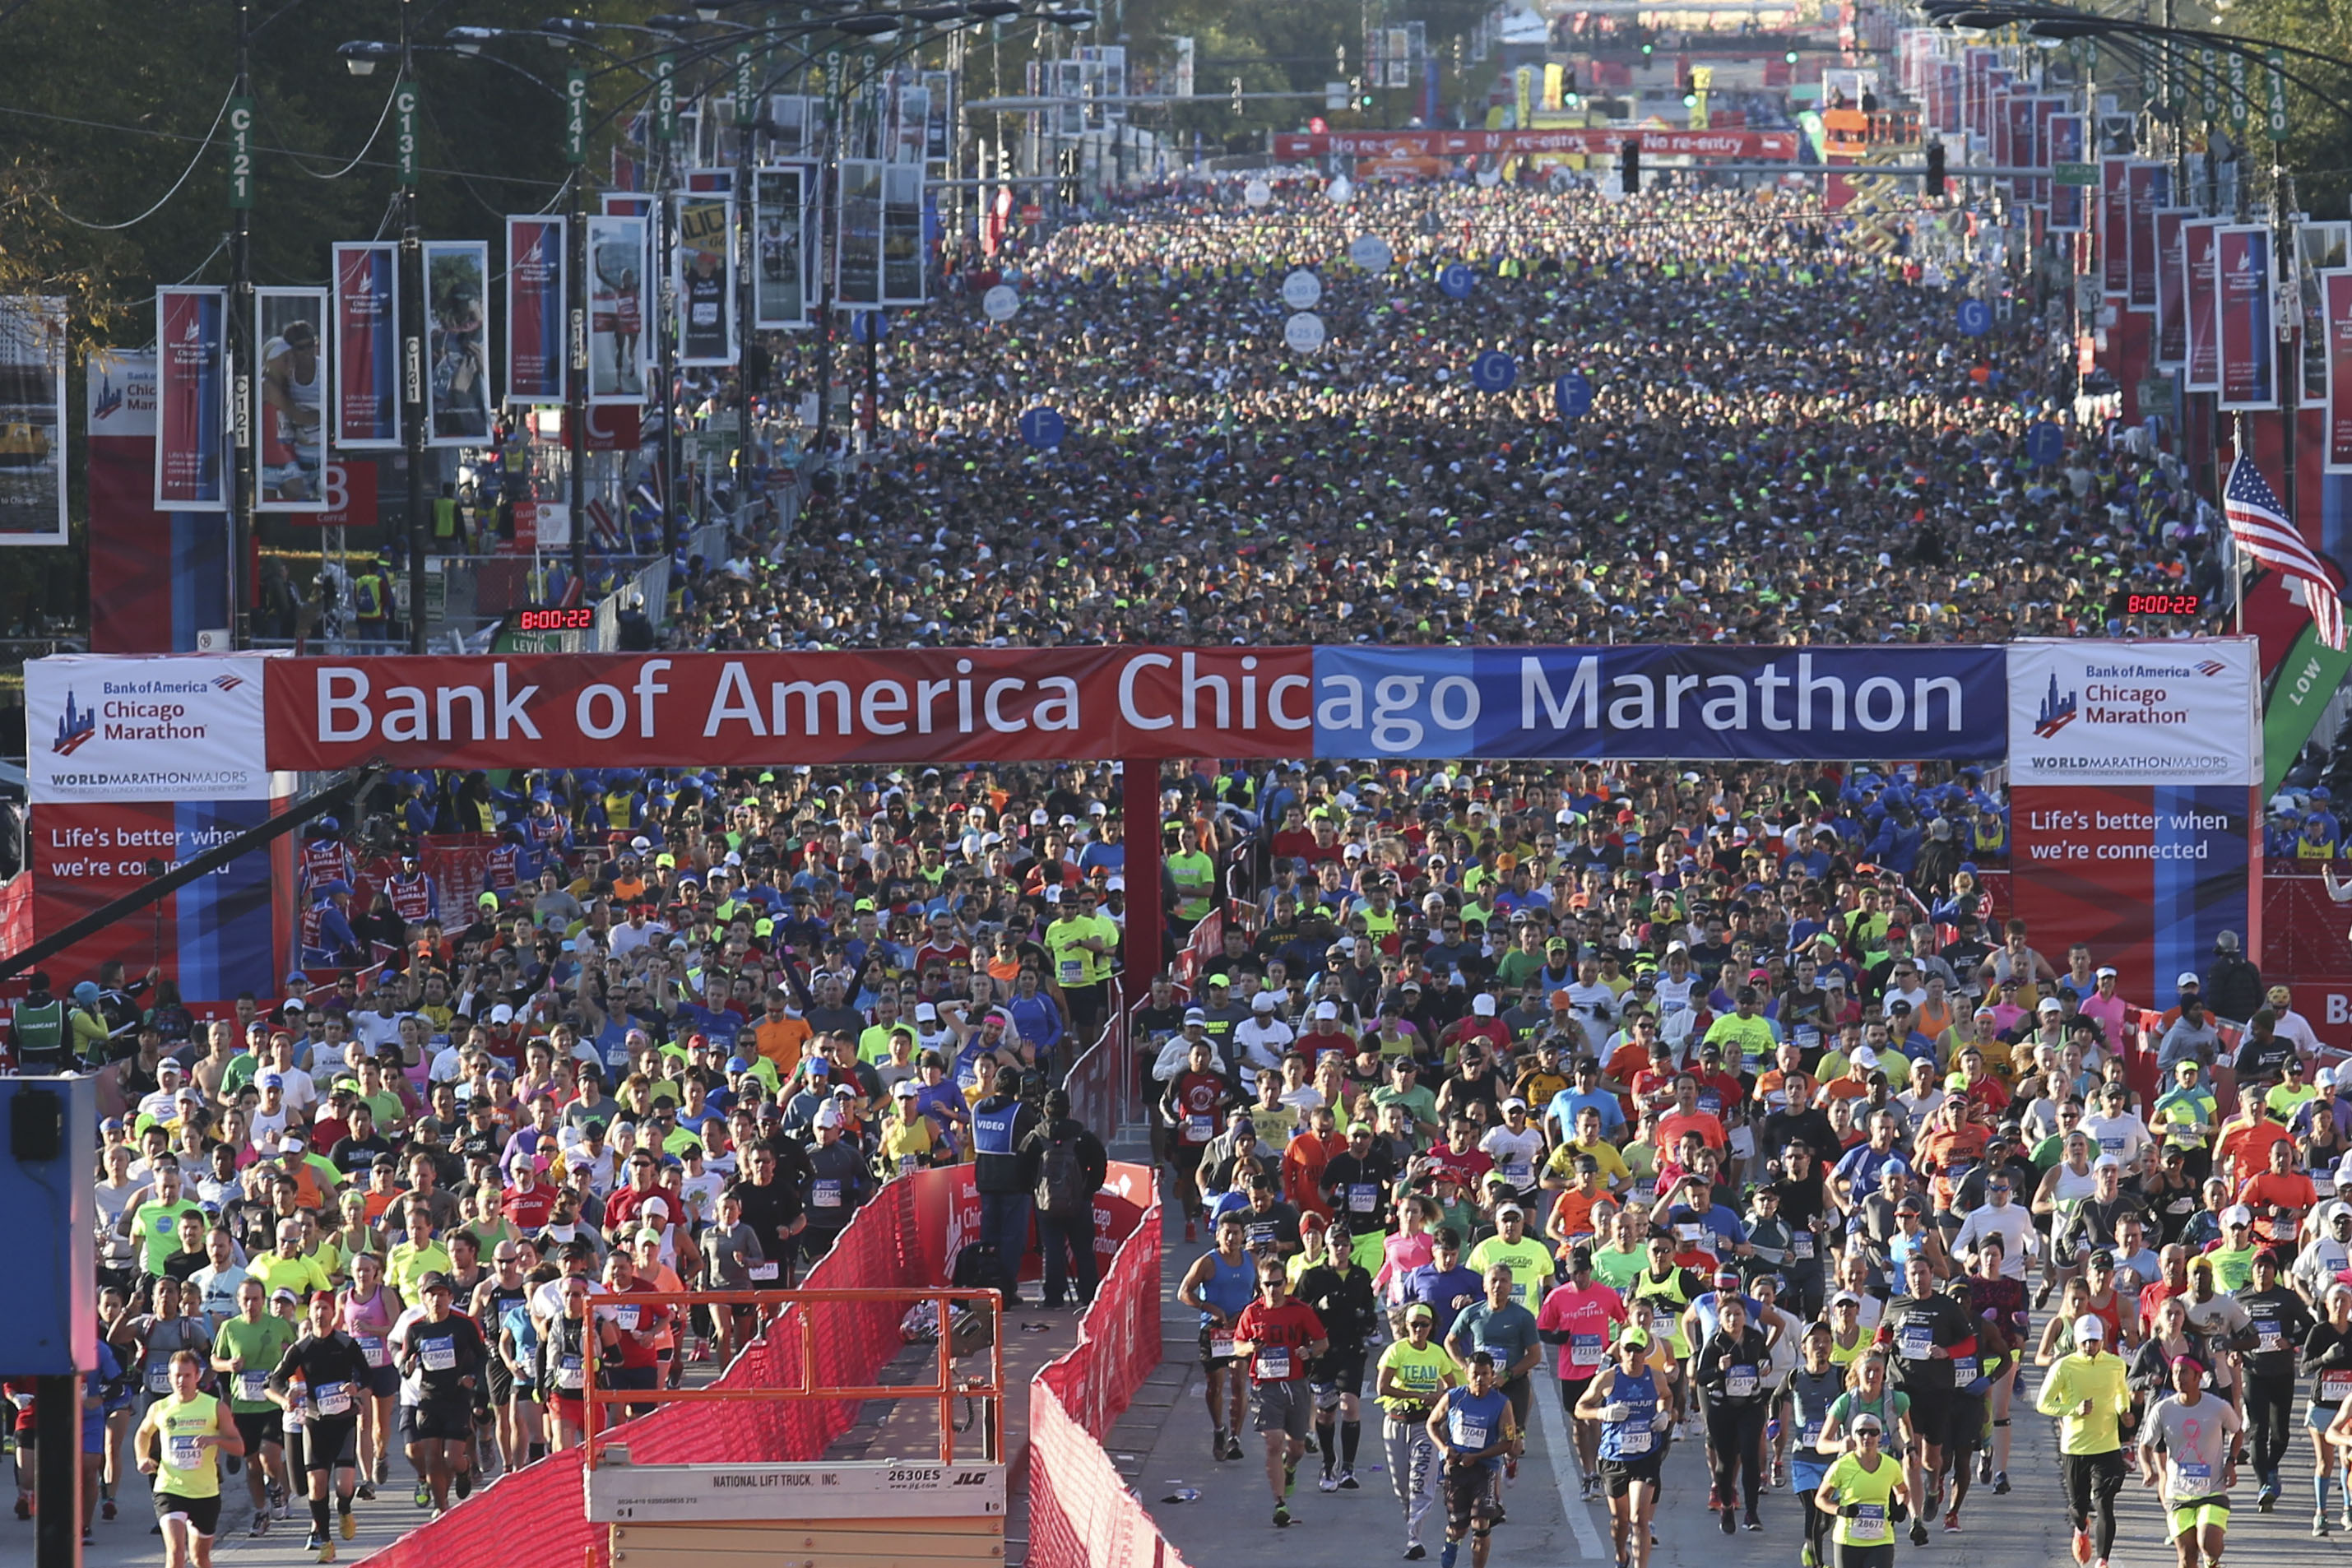 Runners begin the 2014 Bank of America Chicago Marathon on Sunday, October 12, 2014.